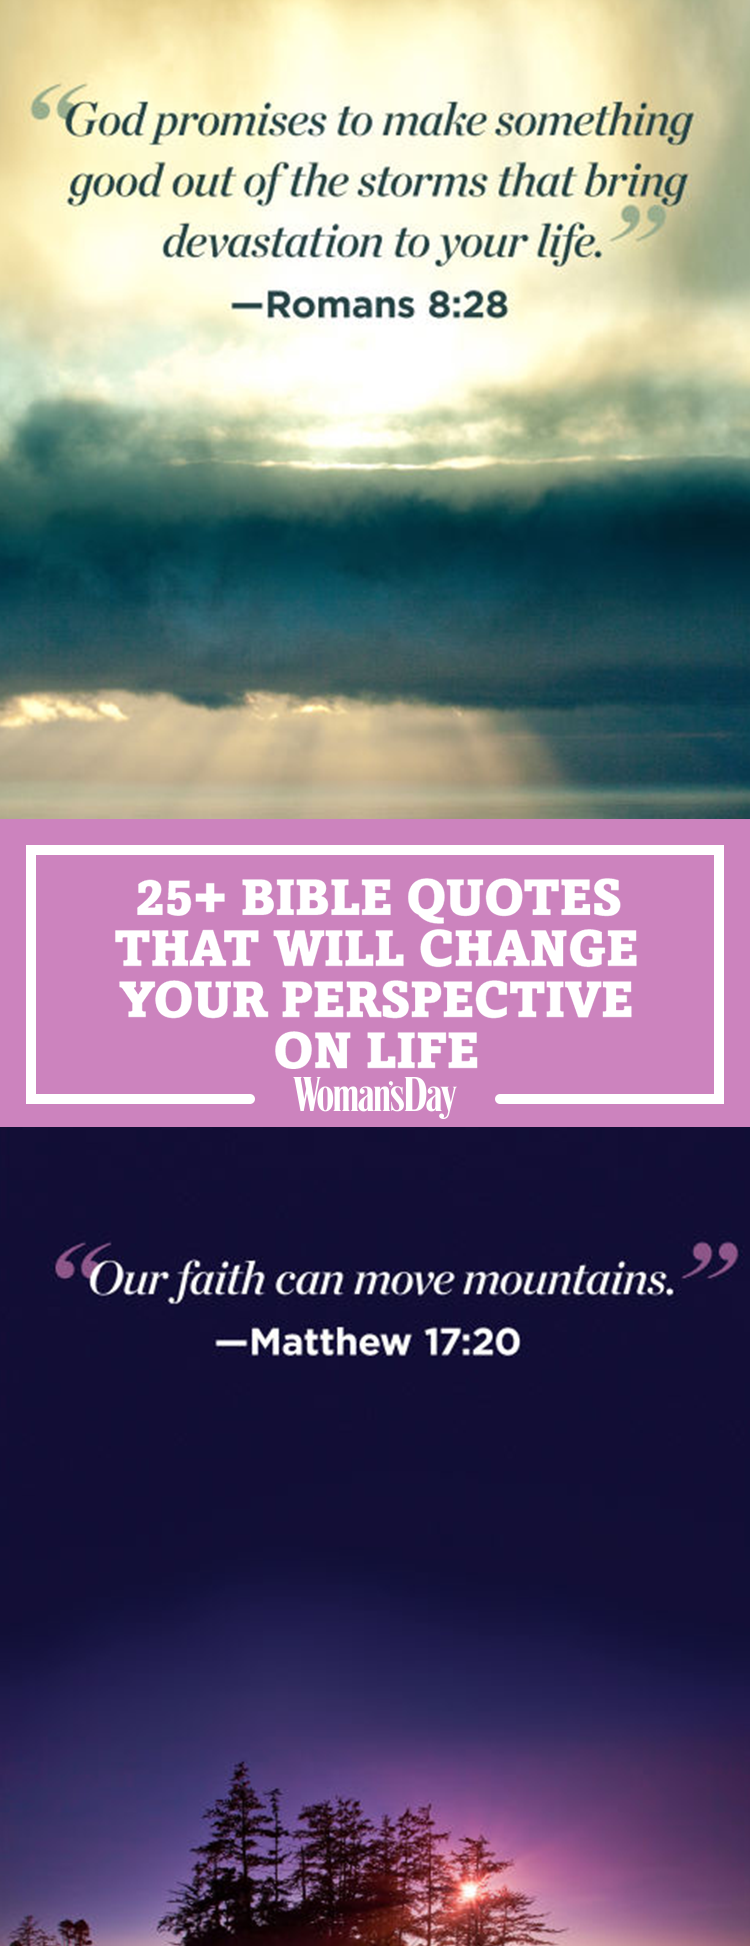 26 inspirational bible quotes that will change your perspective on